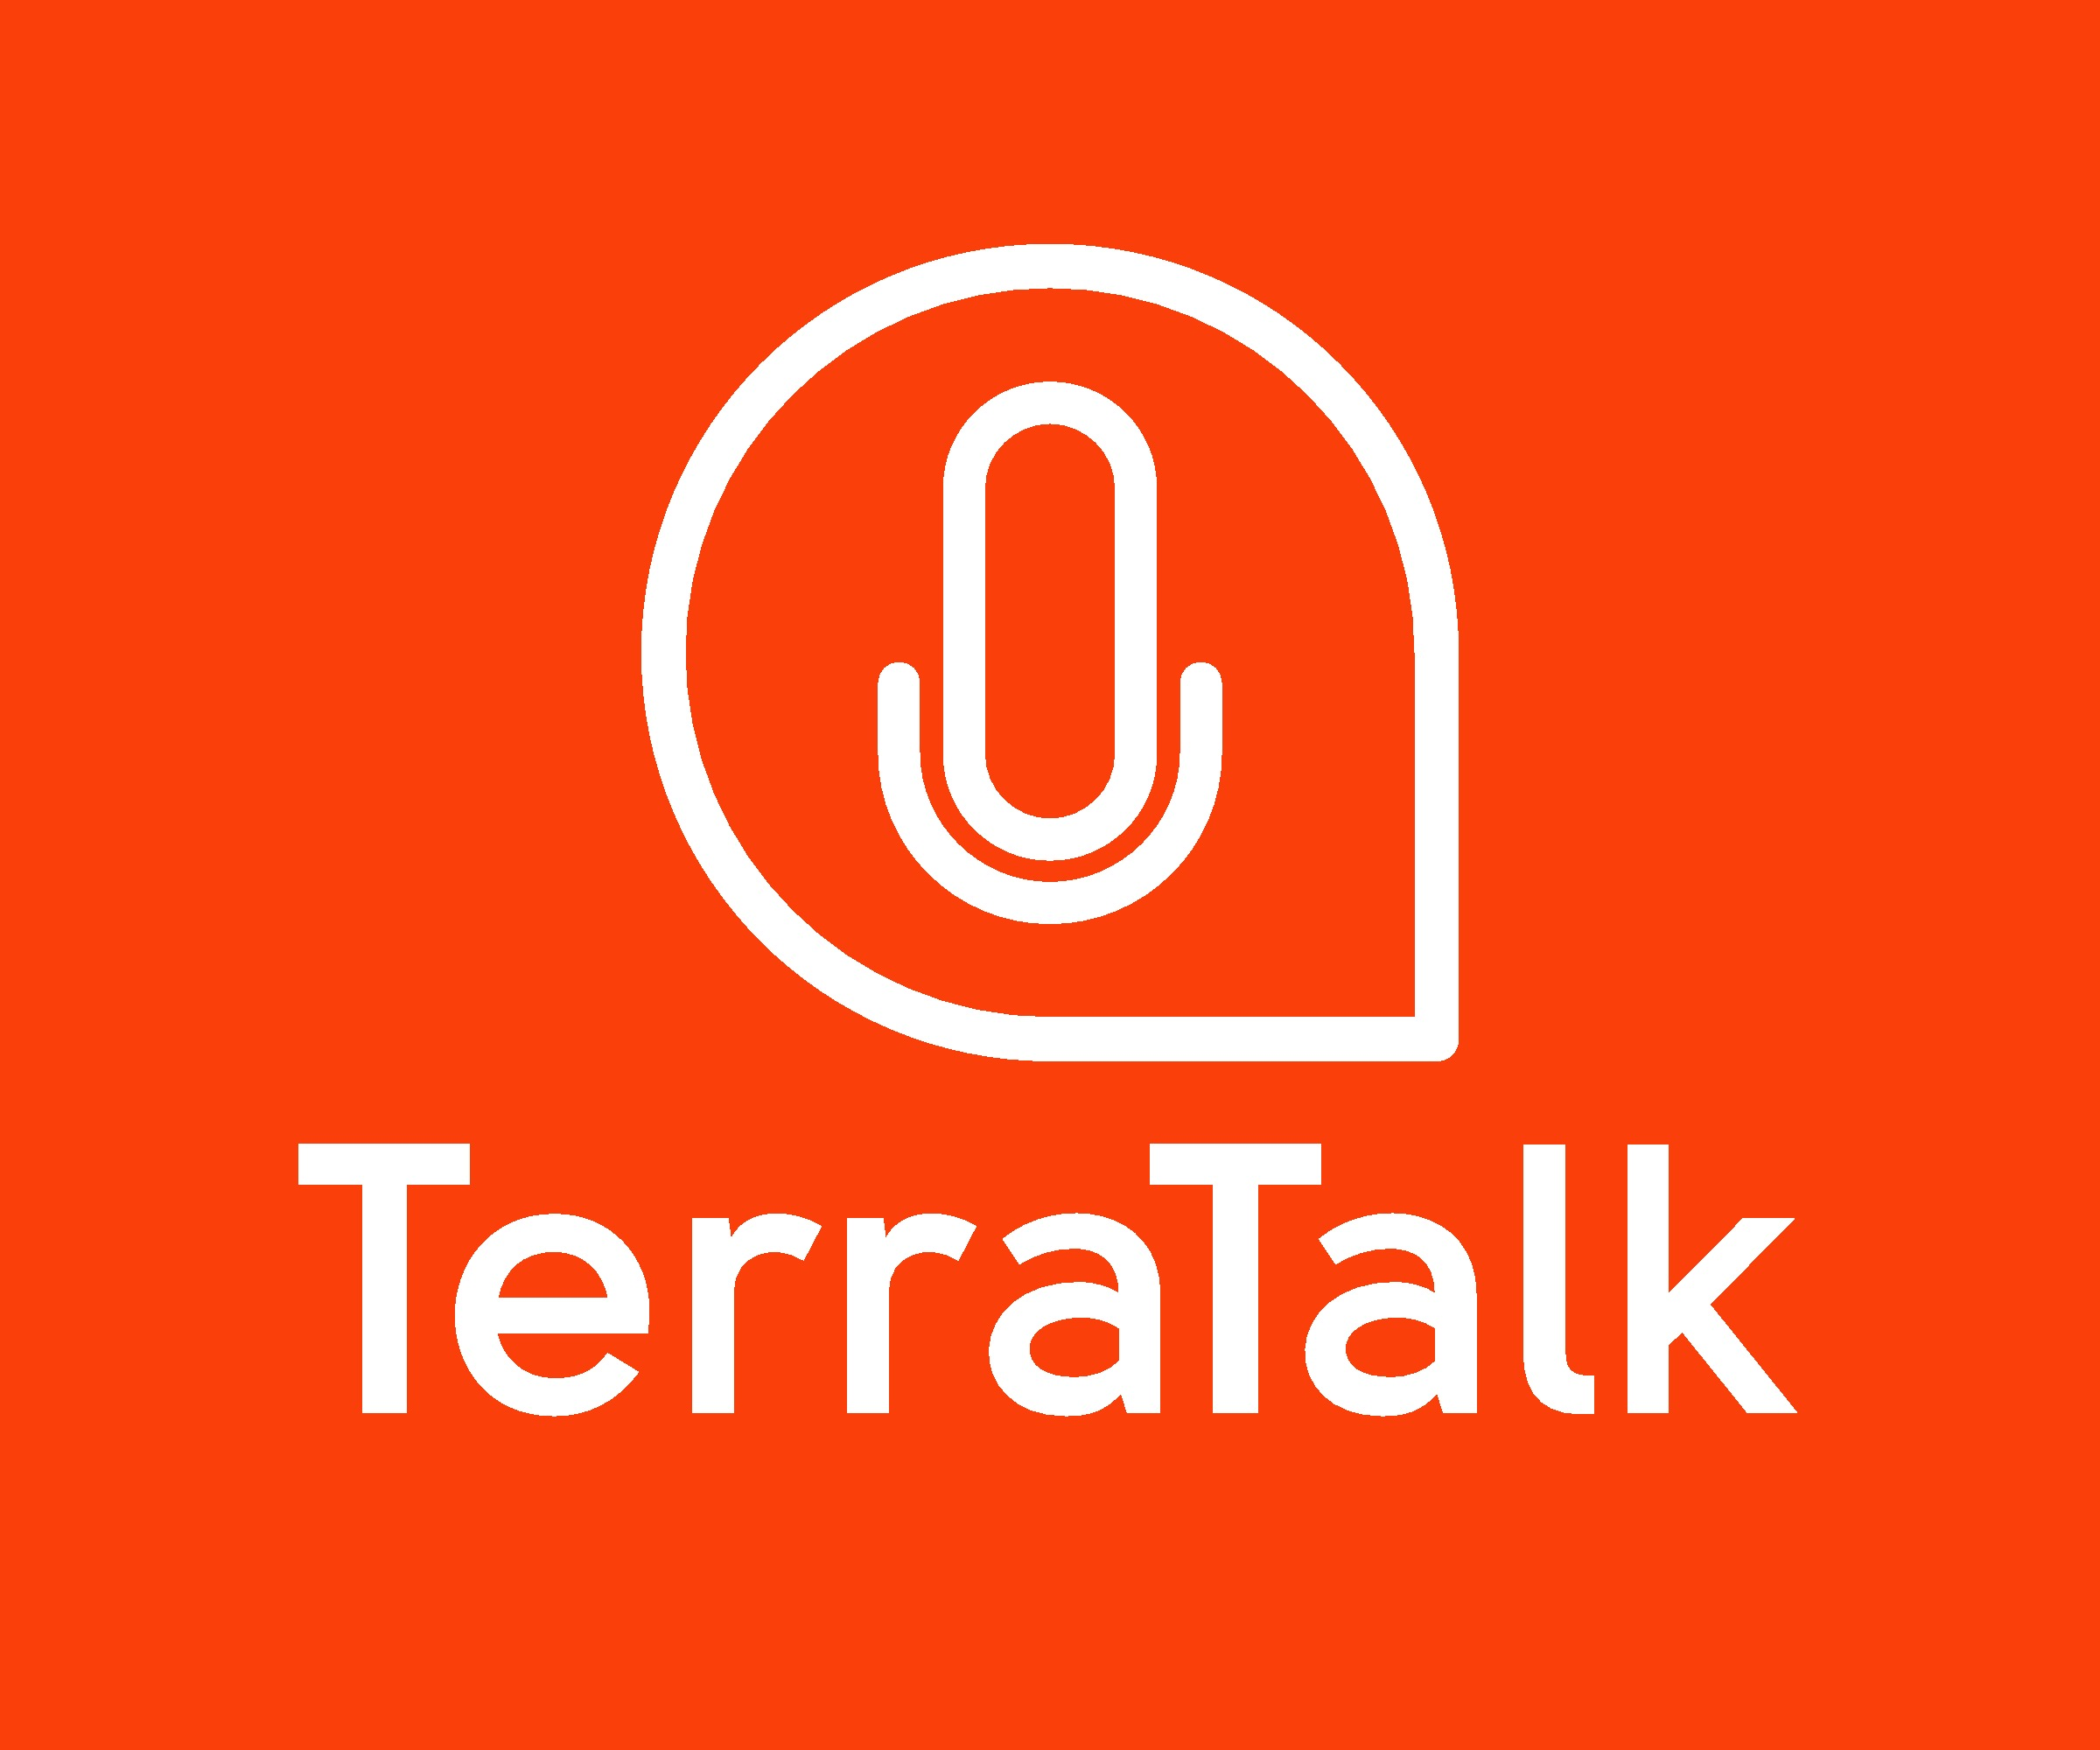 App called Terratalk